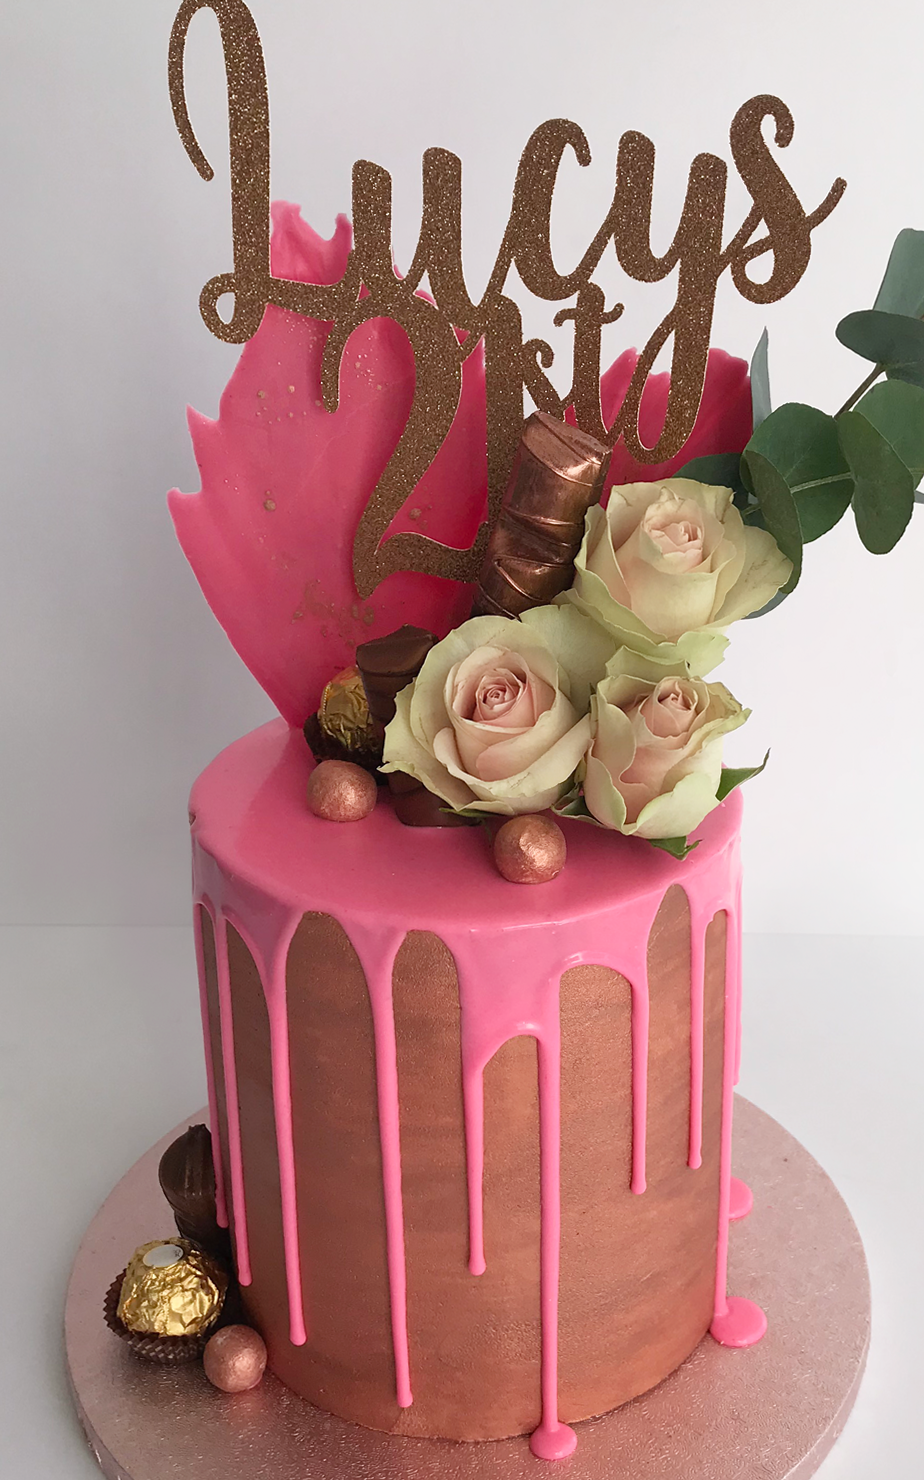 Phenomenal 21St Cake Girls Bespoke Celebration Cakes Antonias Cakes Cake Shop Personalised Birthday Cards Veneteletsinfo